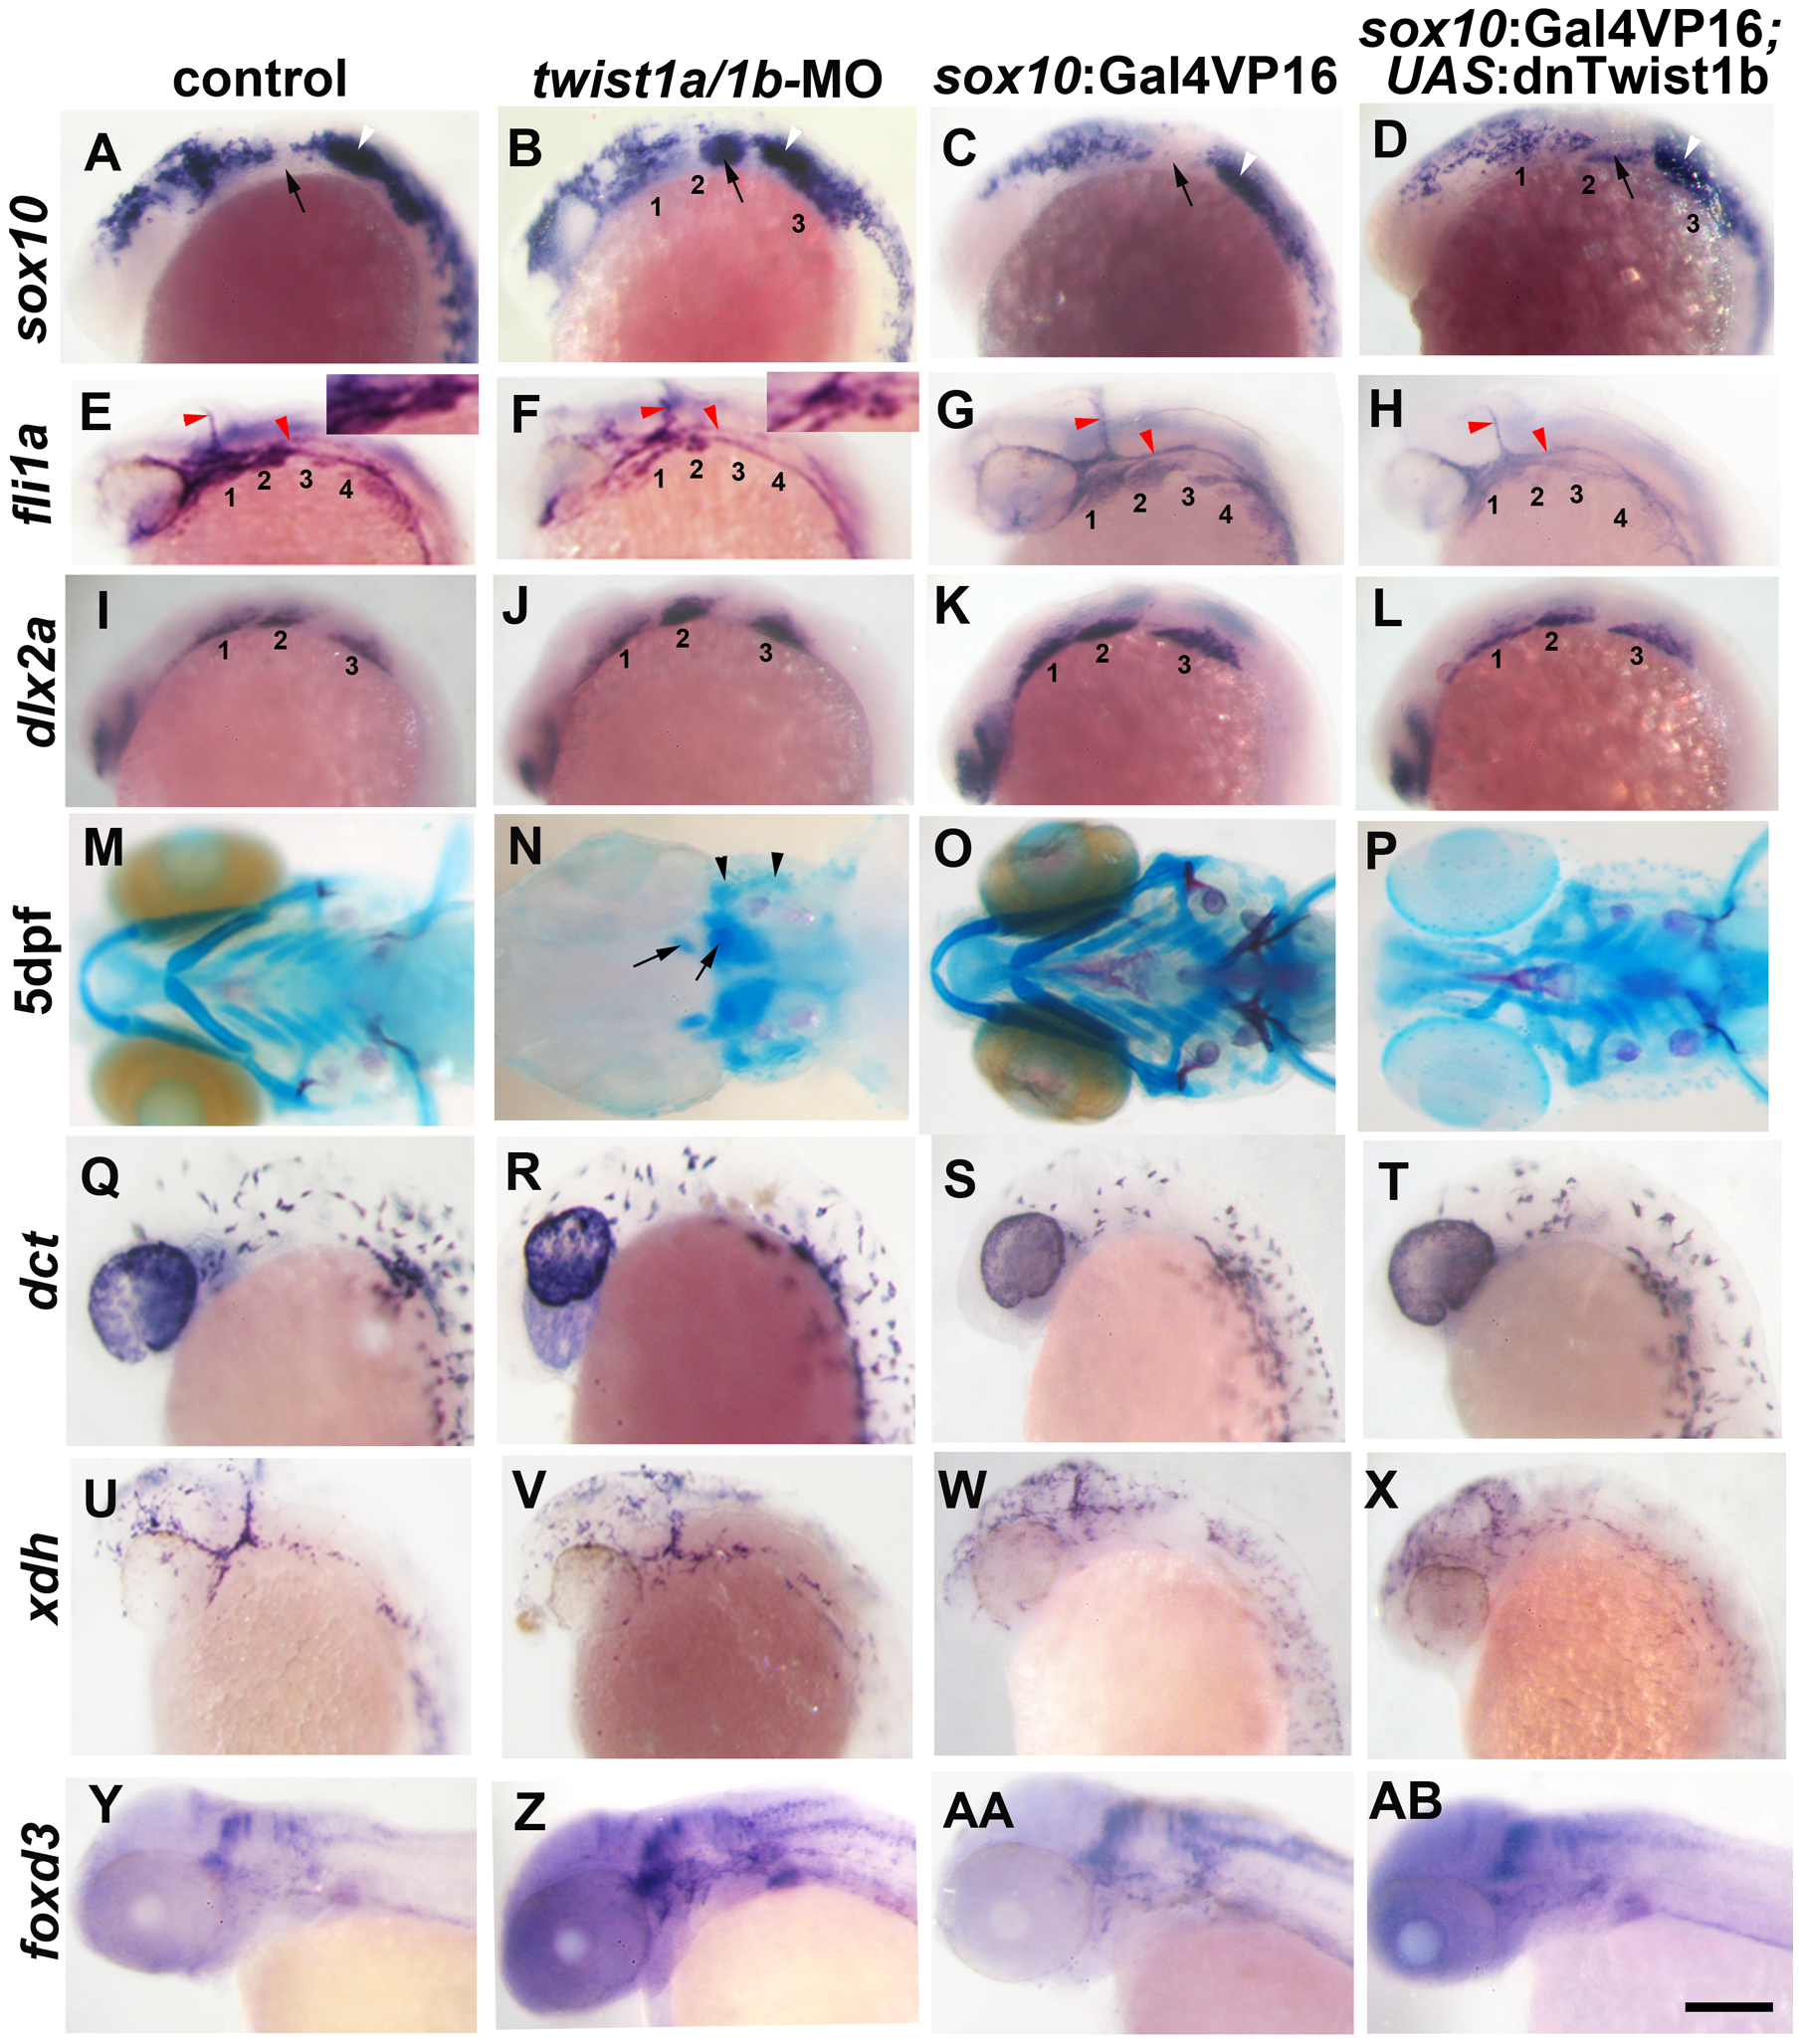 Twist1 genes are required for ectomesenchyme specification in zebrafish.